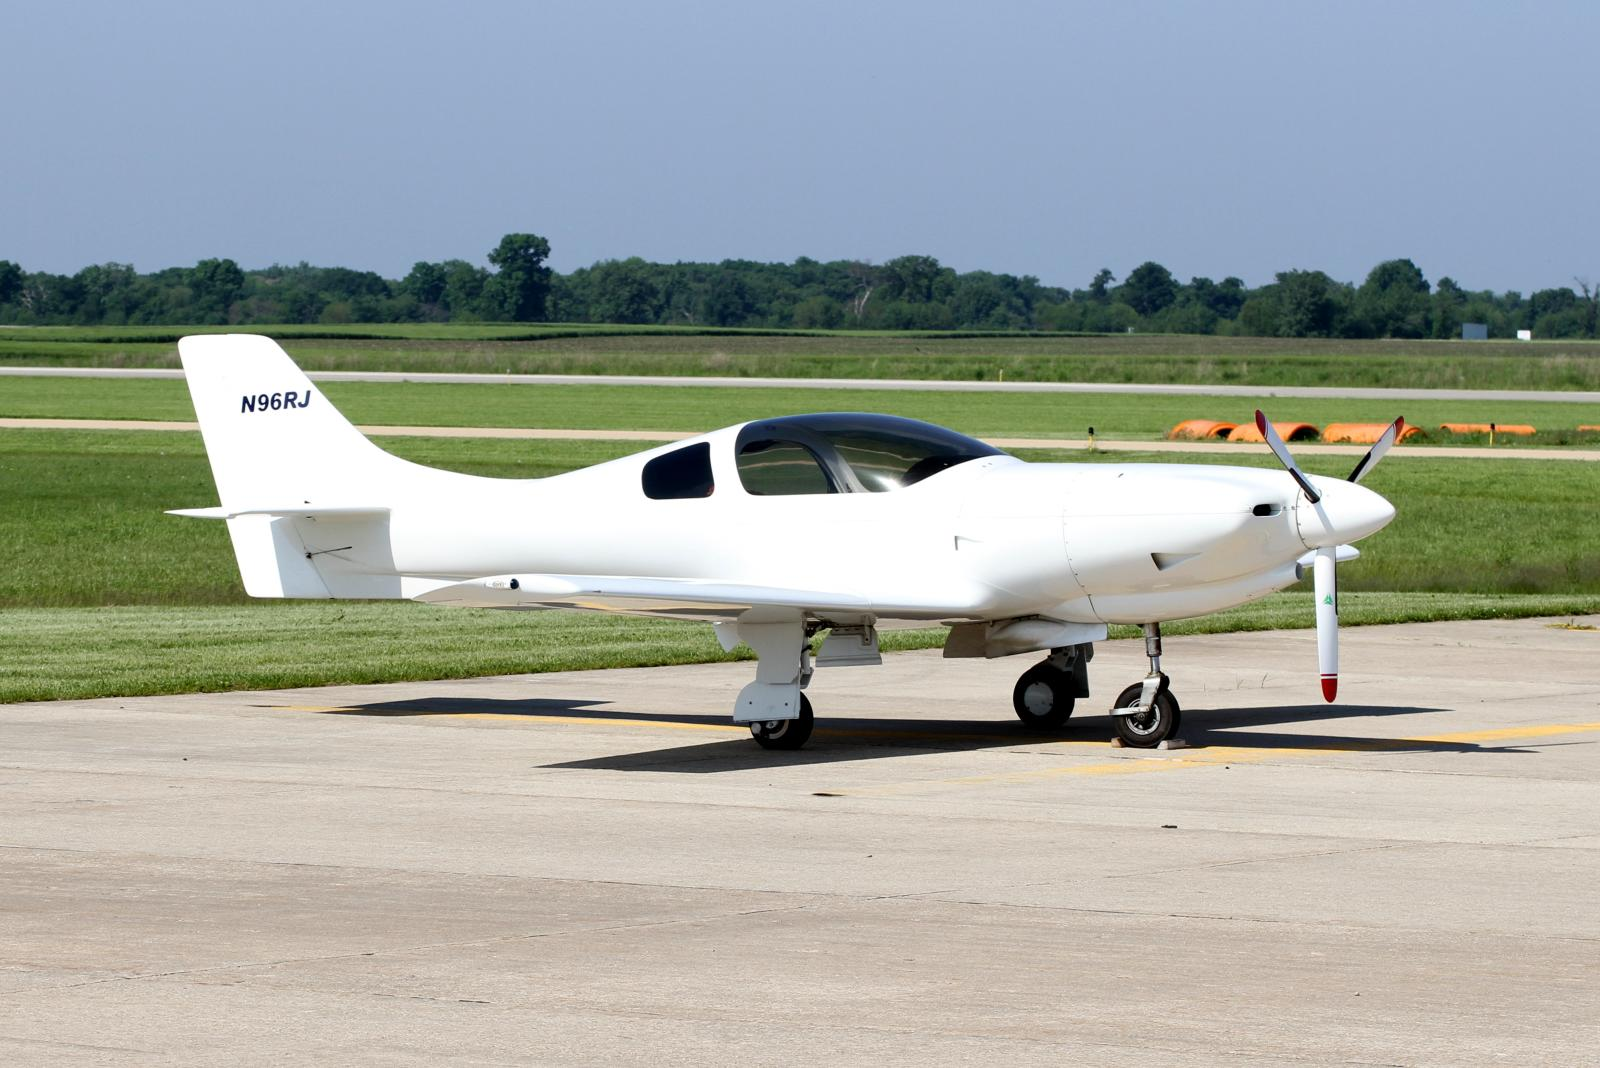 File Lancair 235 N96rj Jpg Wikimedia Commons